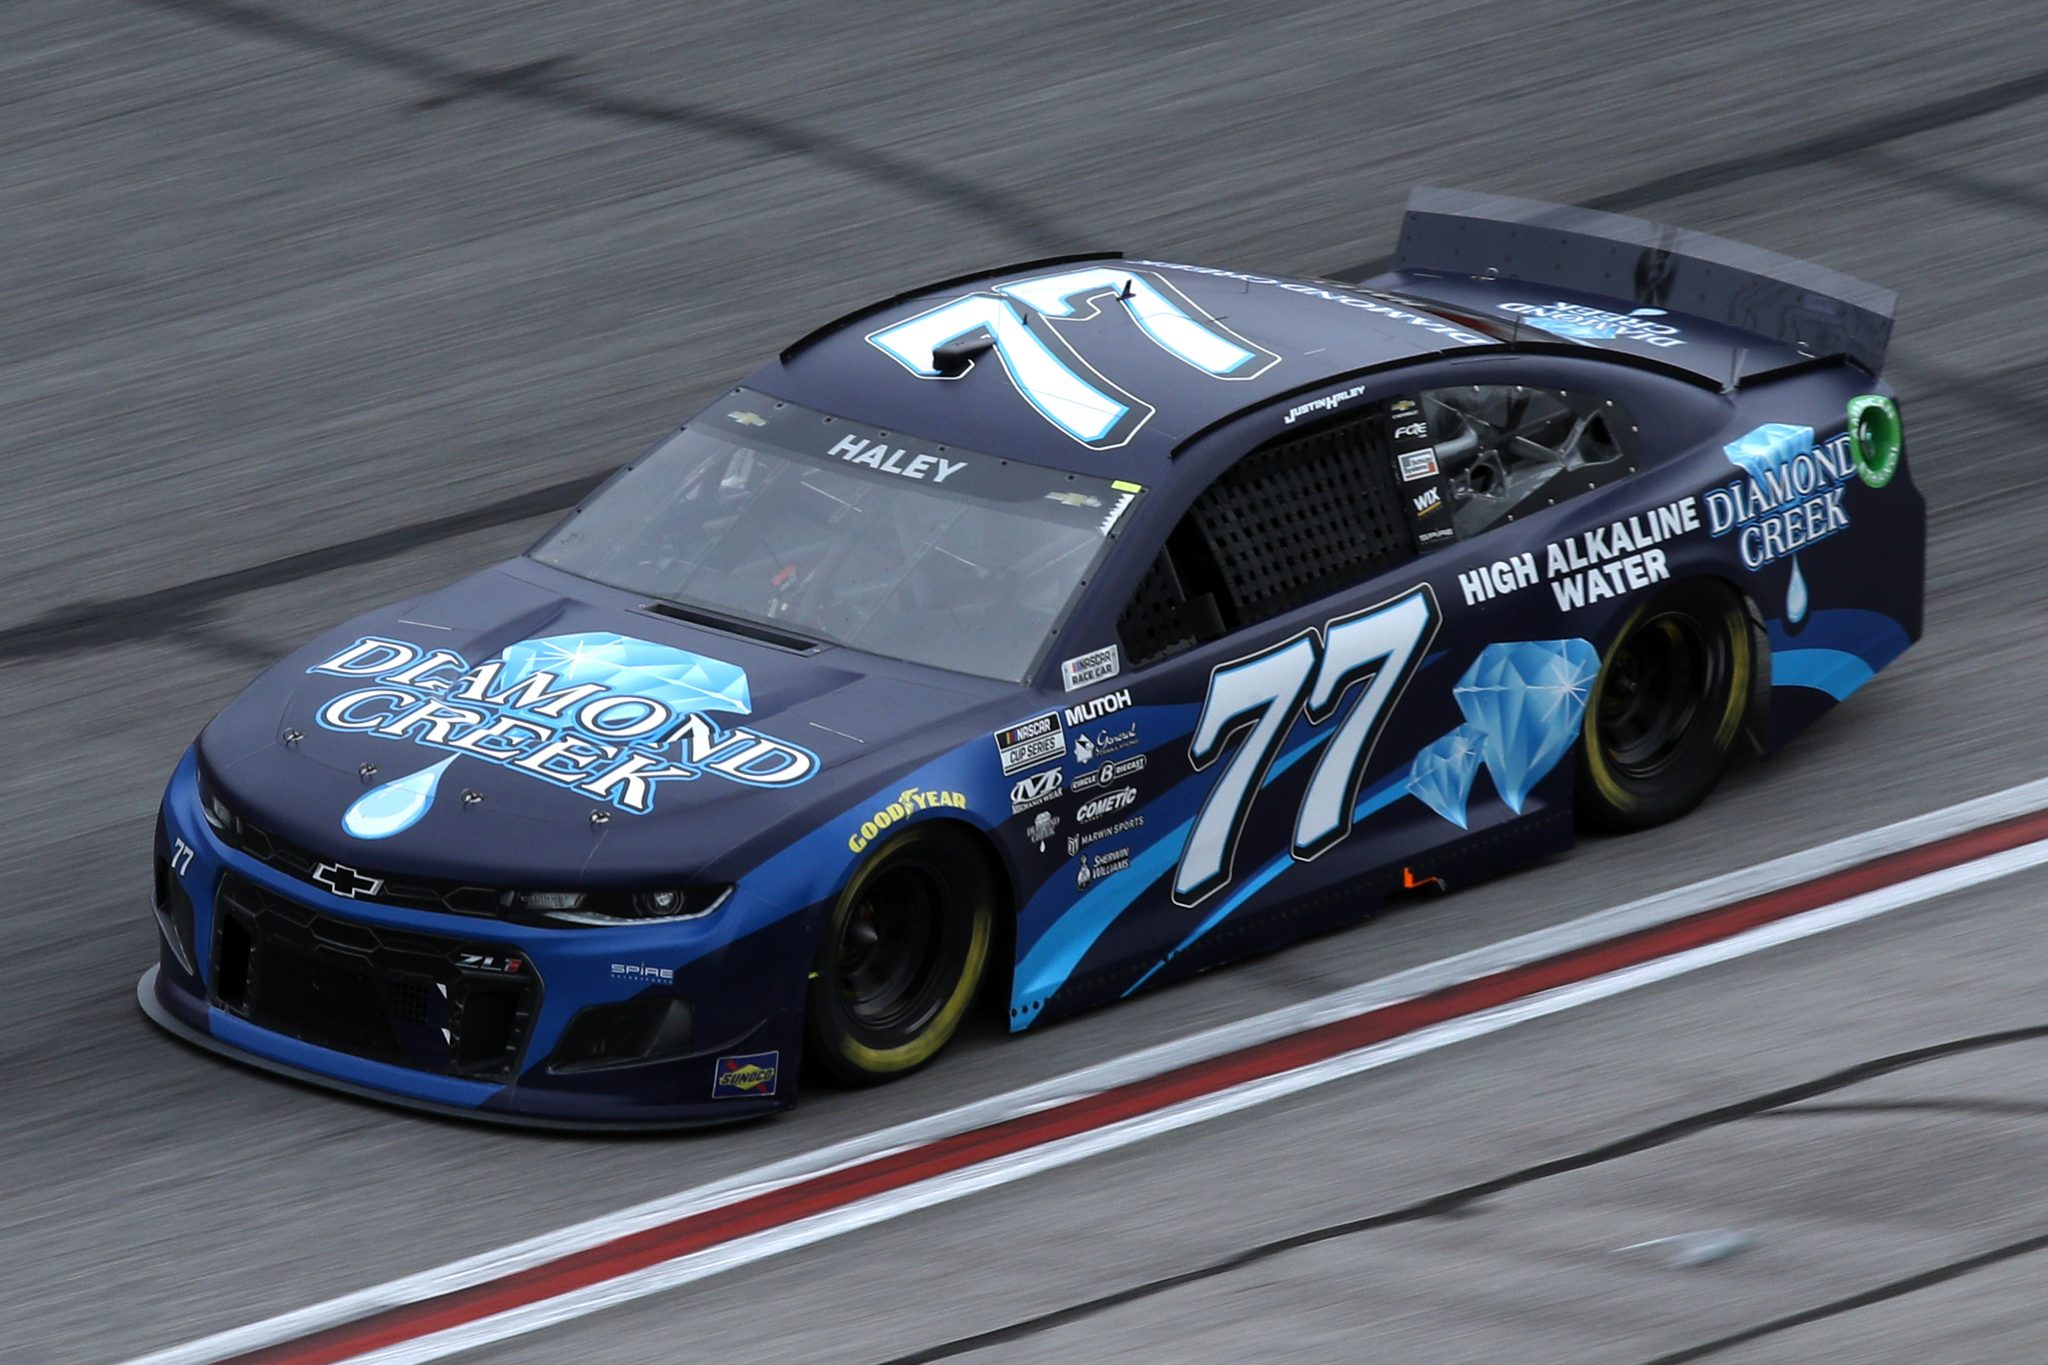 HAMPTON, GEORGIA - MARCH 21: Justin Haley, driver of the #77 Diamond Creek Water Chevrolet, drives during the NASCAR Cup Series Folds of Honor QuikTrip 500 at Atlanta Motor Speedway on March 21, 2021 in Hampton, Georgia. (Photo by Sean Gardner/Getty Images) | Getty Images